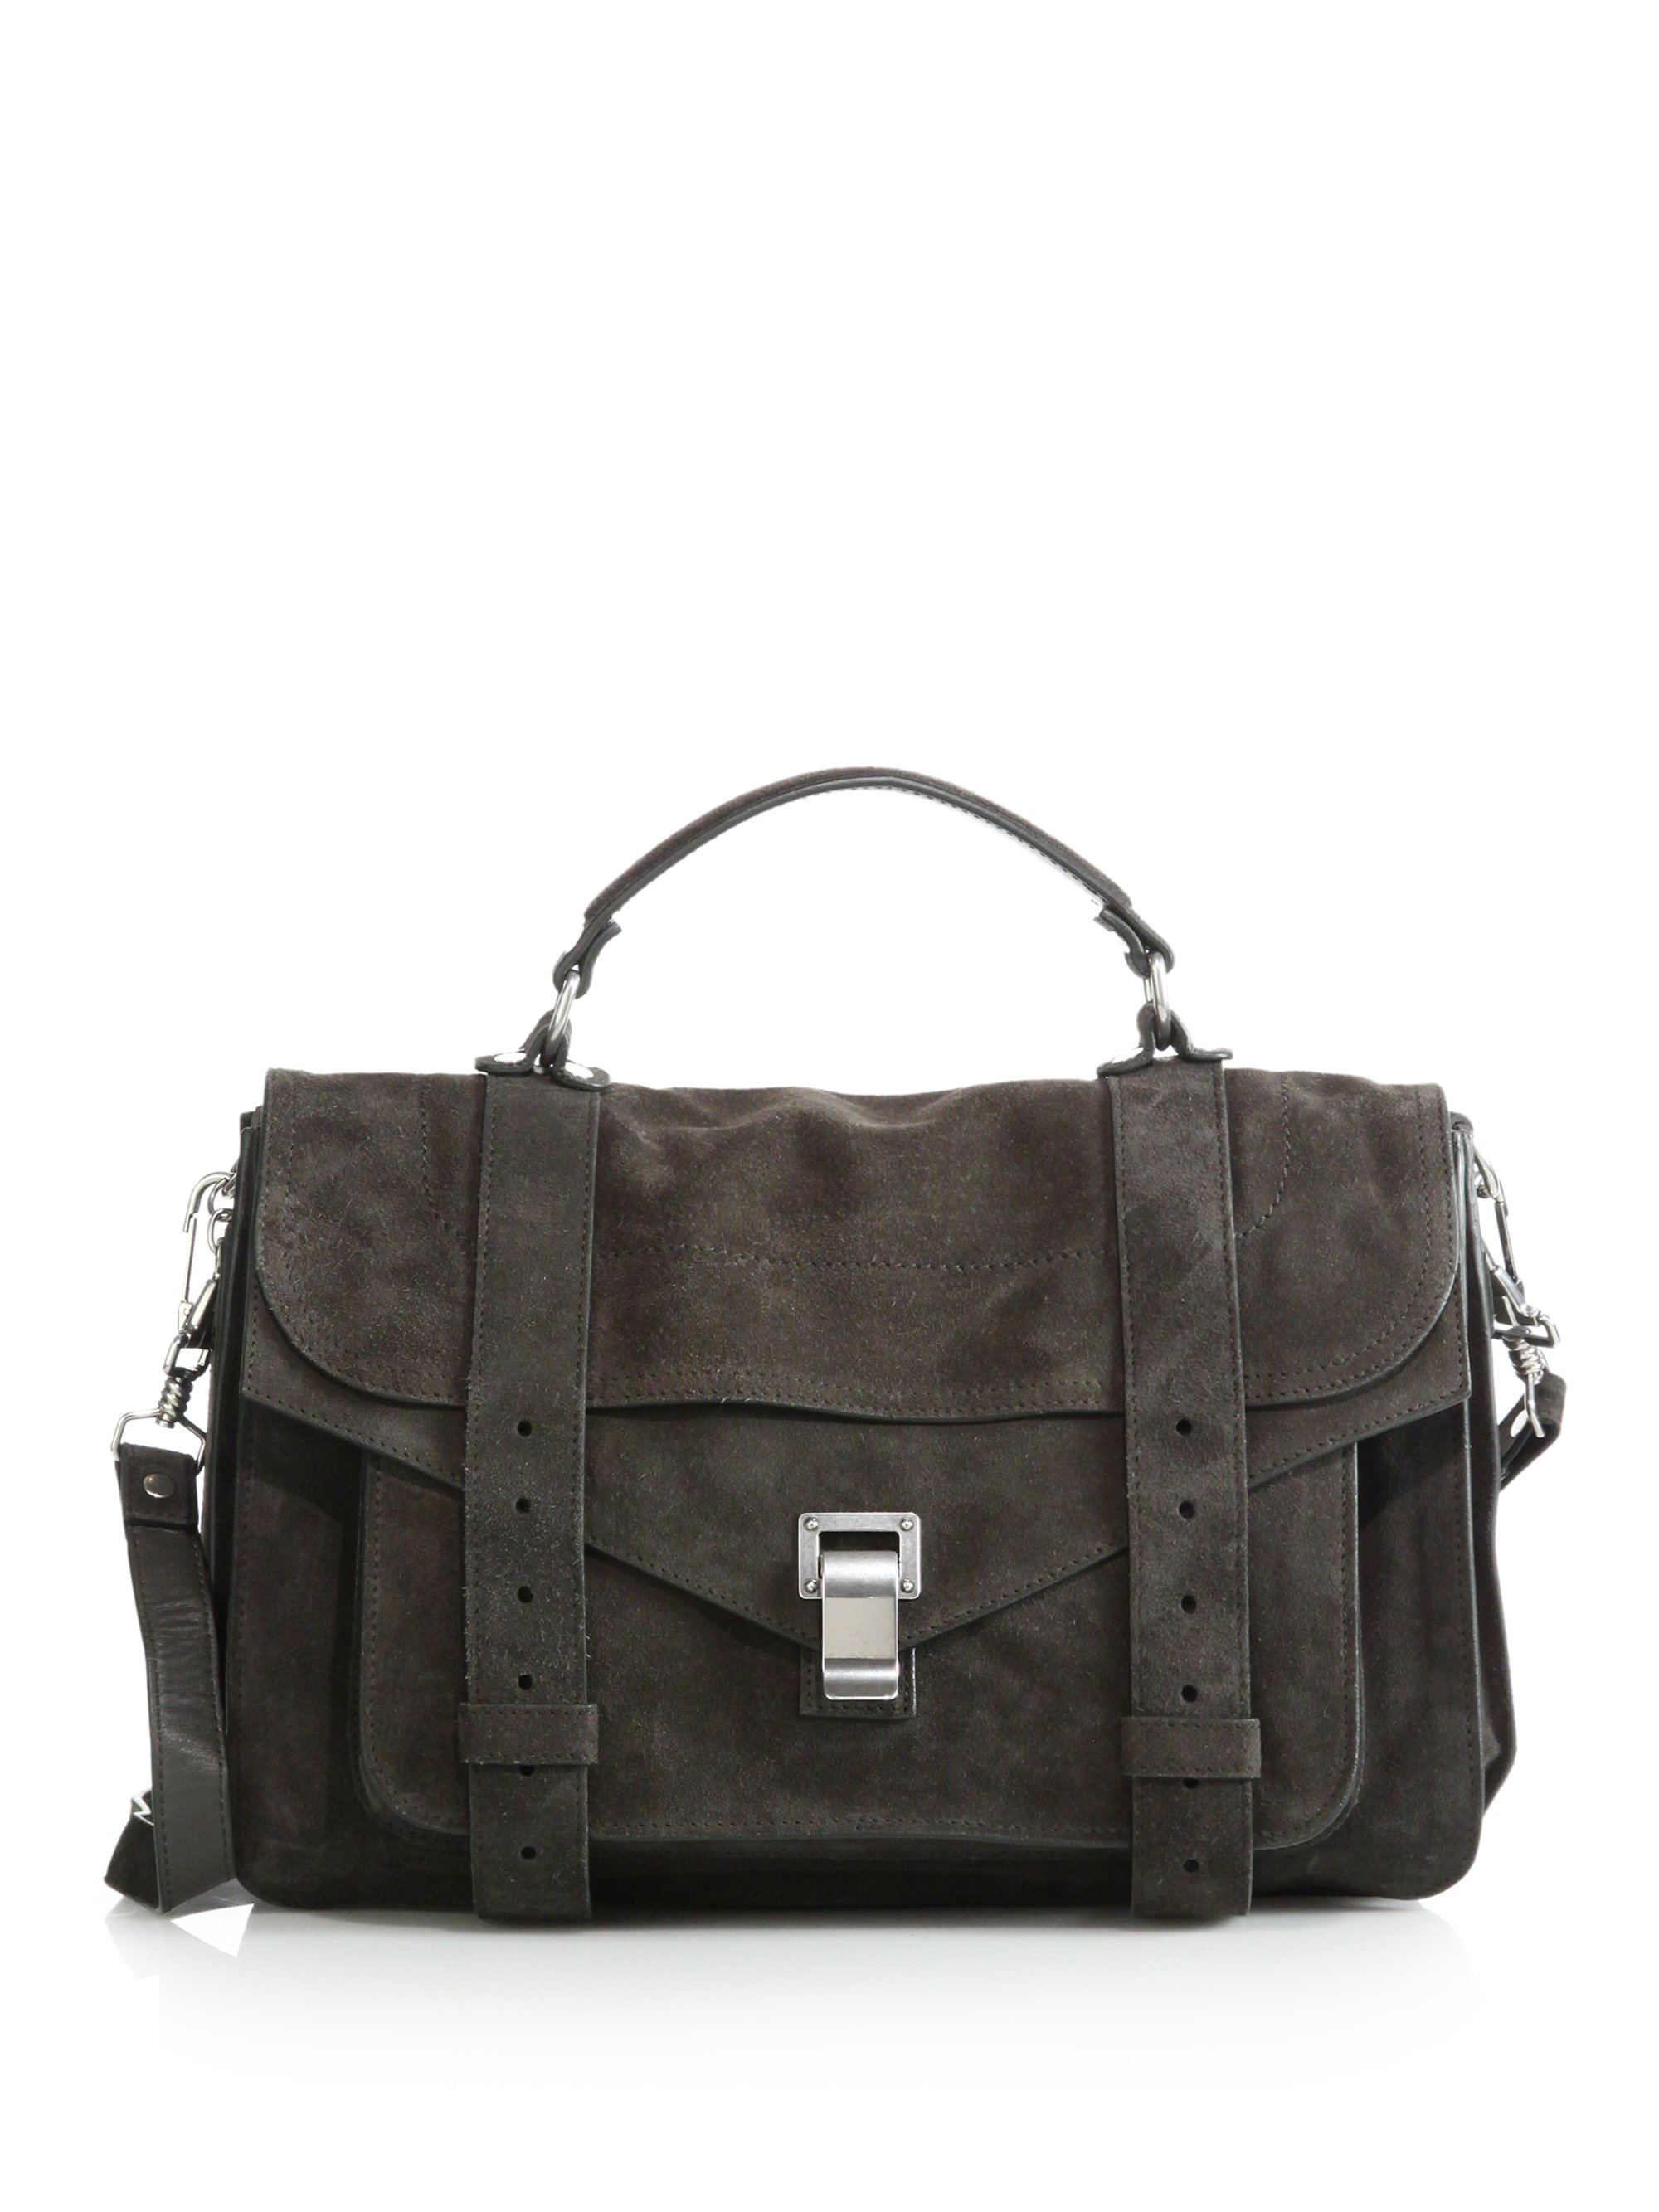 Curl Small Embellished Textured-leather And Suede Shoulder Bag - Gray Proenza Schouler N44KA5H